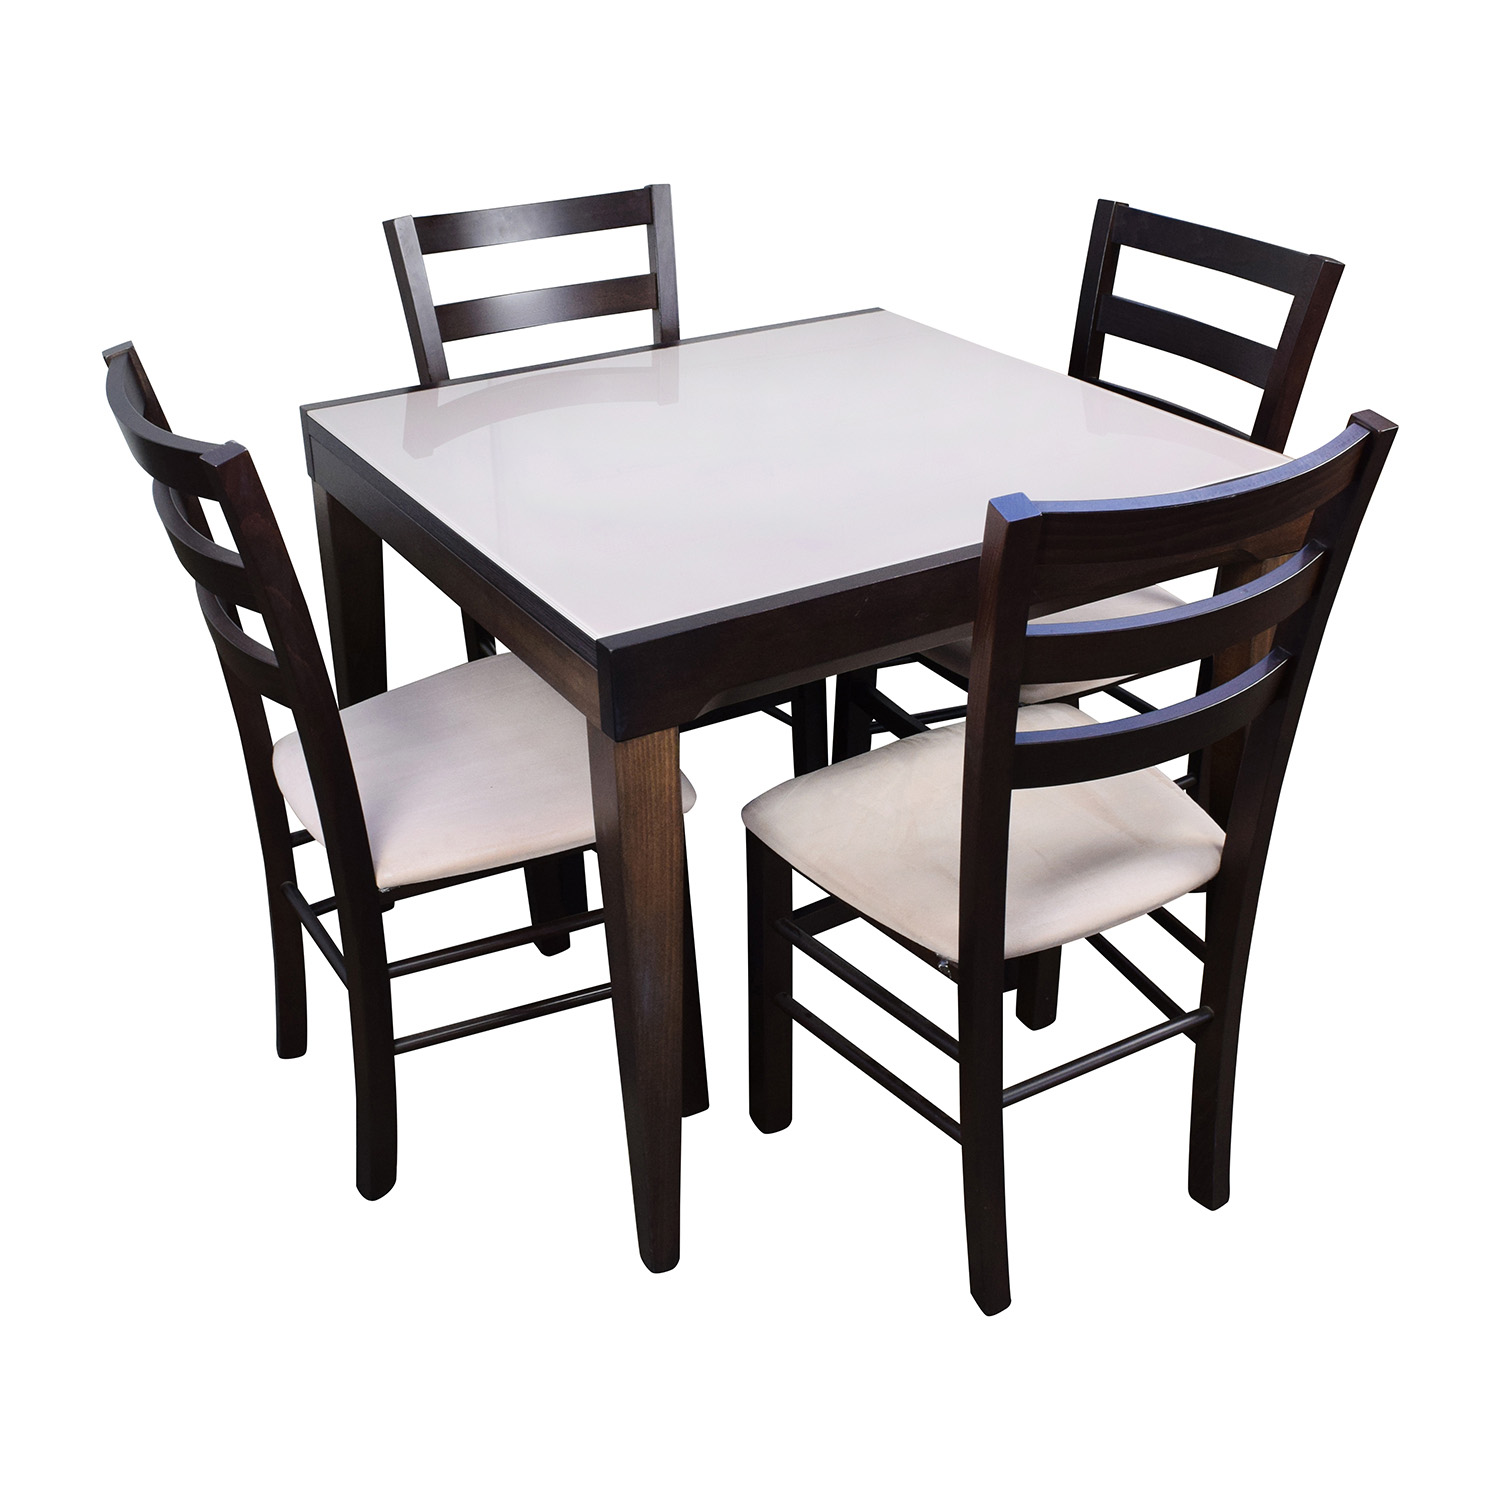 buy Macys Macys Cafe Latte Five-Piece Extendable Dining Set online